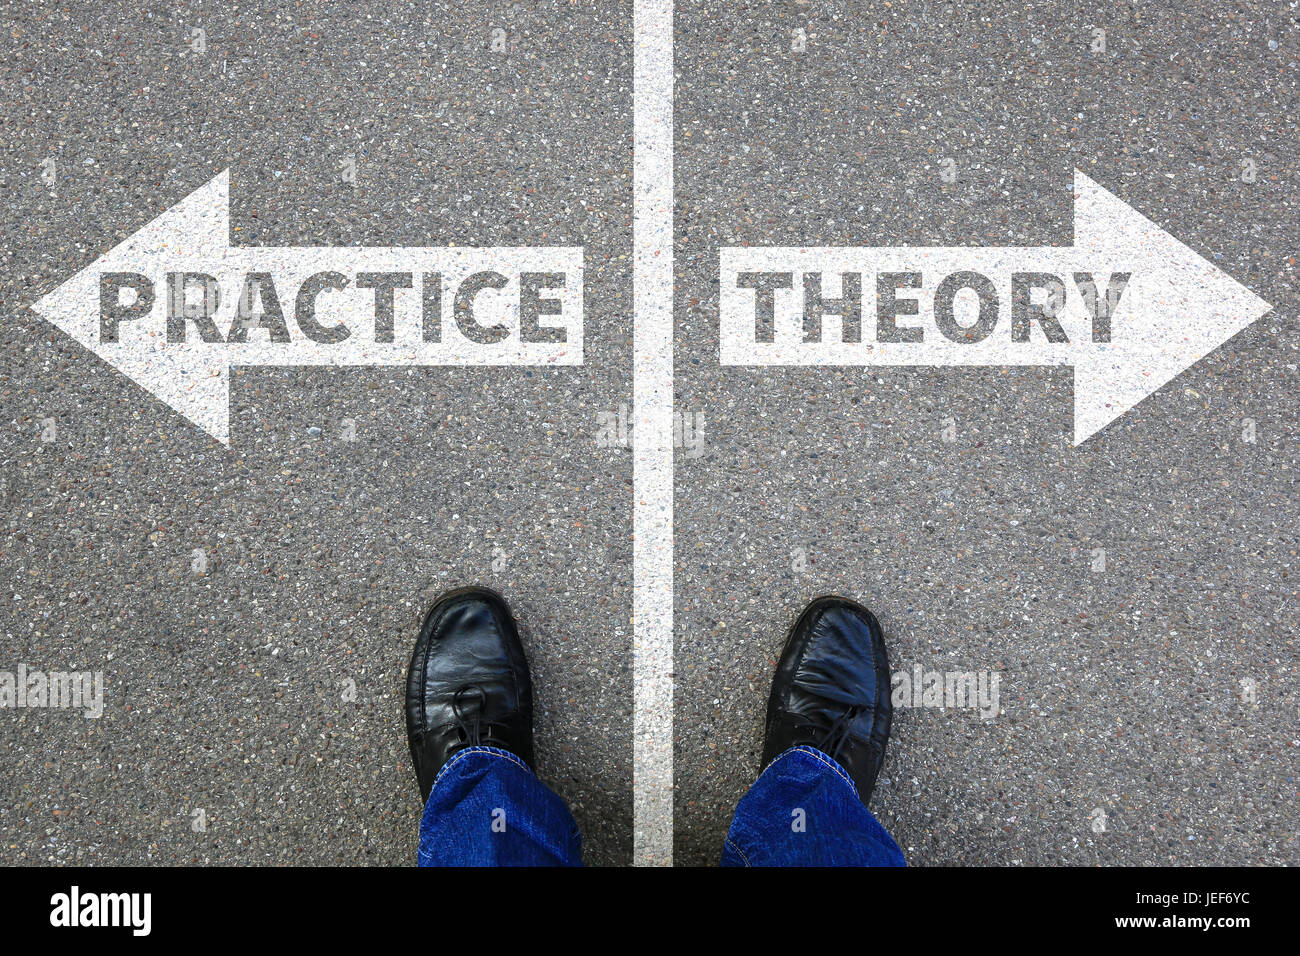 Theory and practice education profession learning success business concept successful - Stock Image